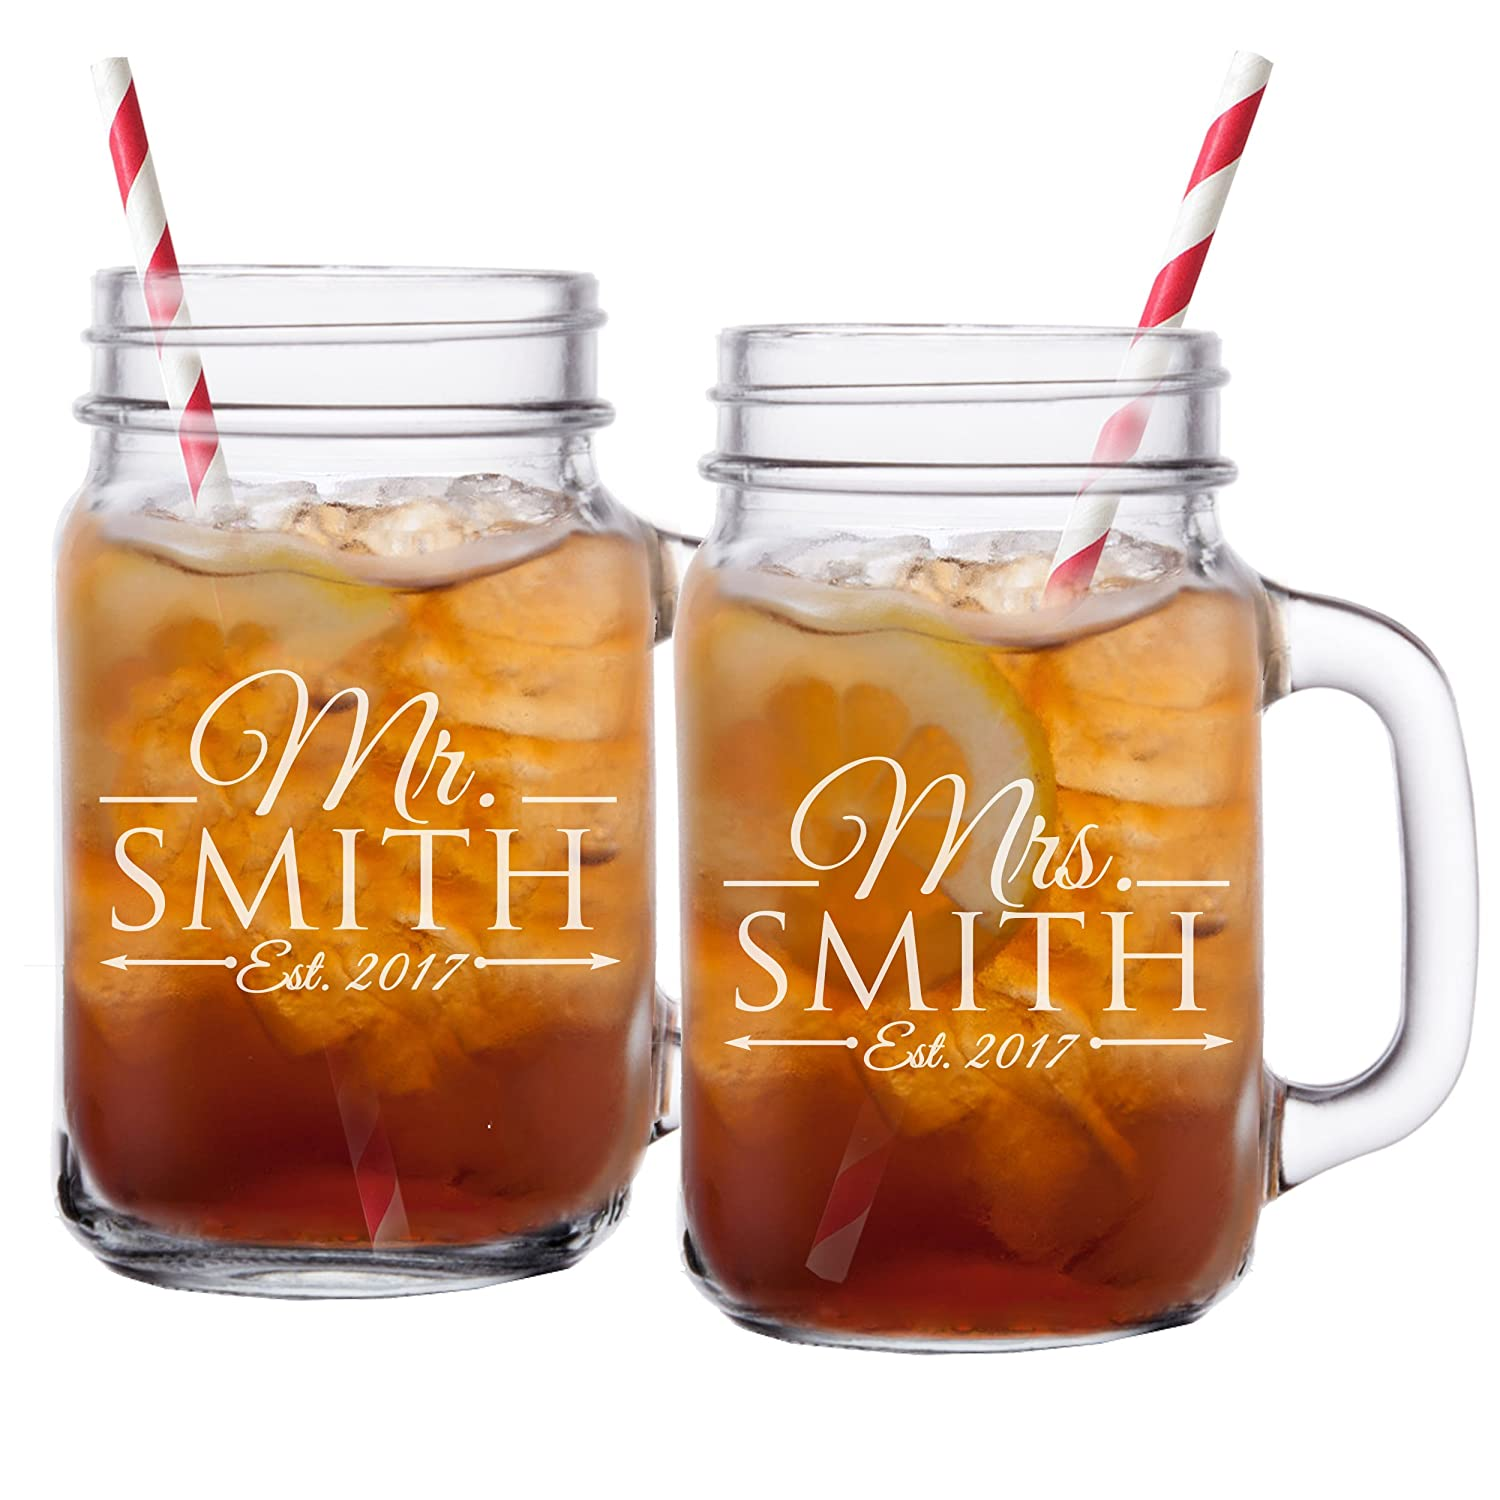 Mr and Mrs Mason Jar Glasses - His and Her Gifts for Couples - Personalized Engraved Wedding Gifts - Custom Monogrammed for Free - Set of 2